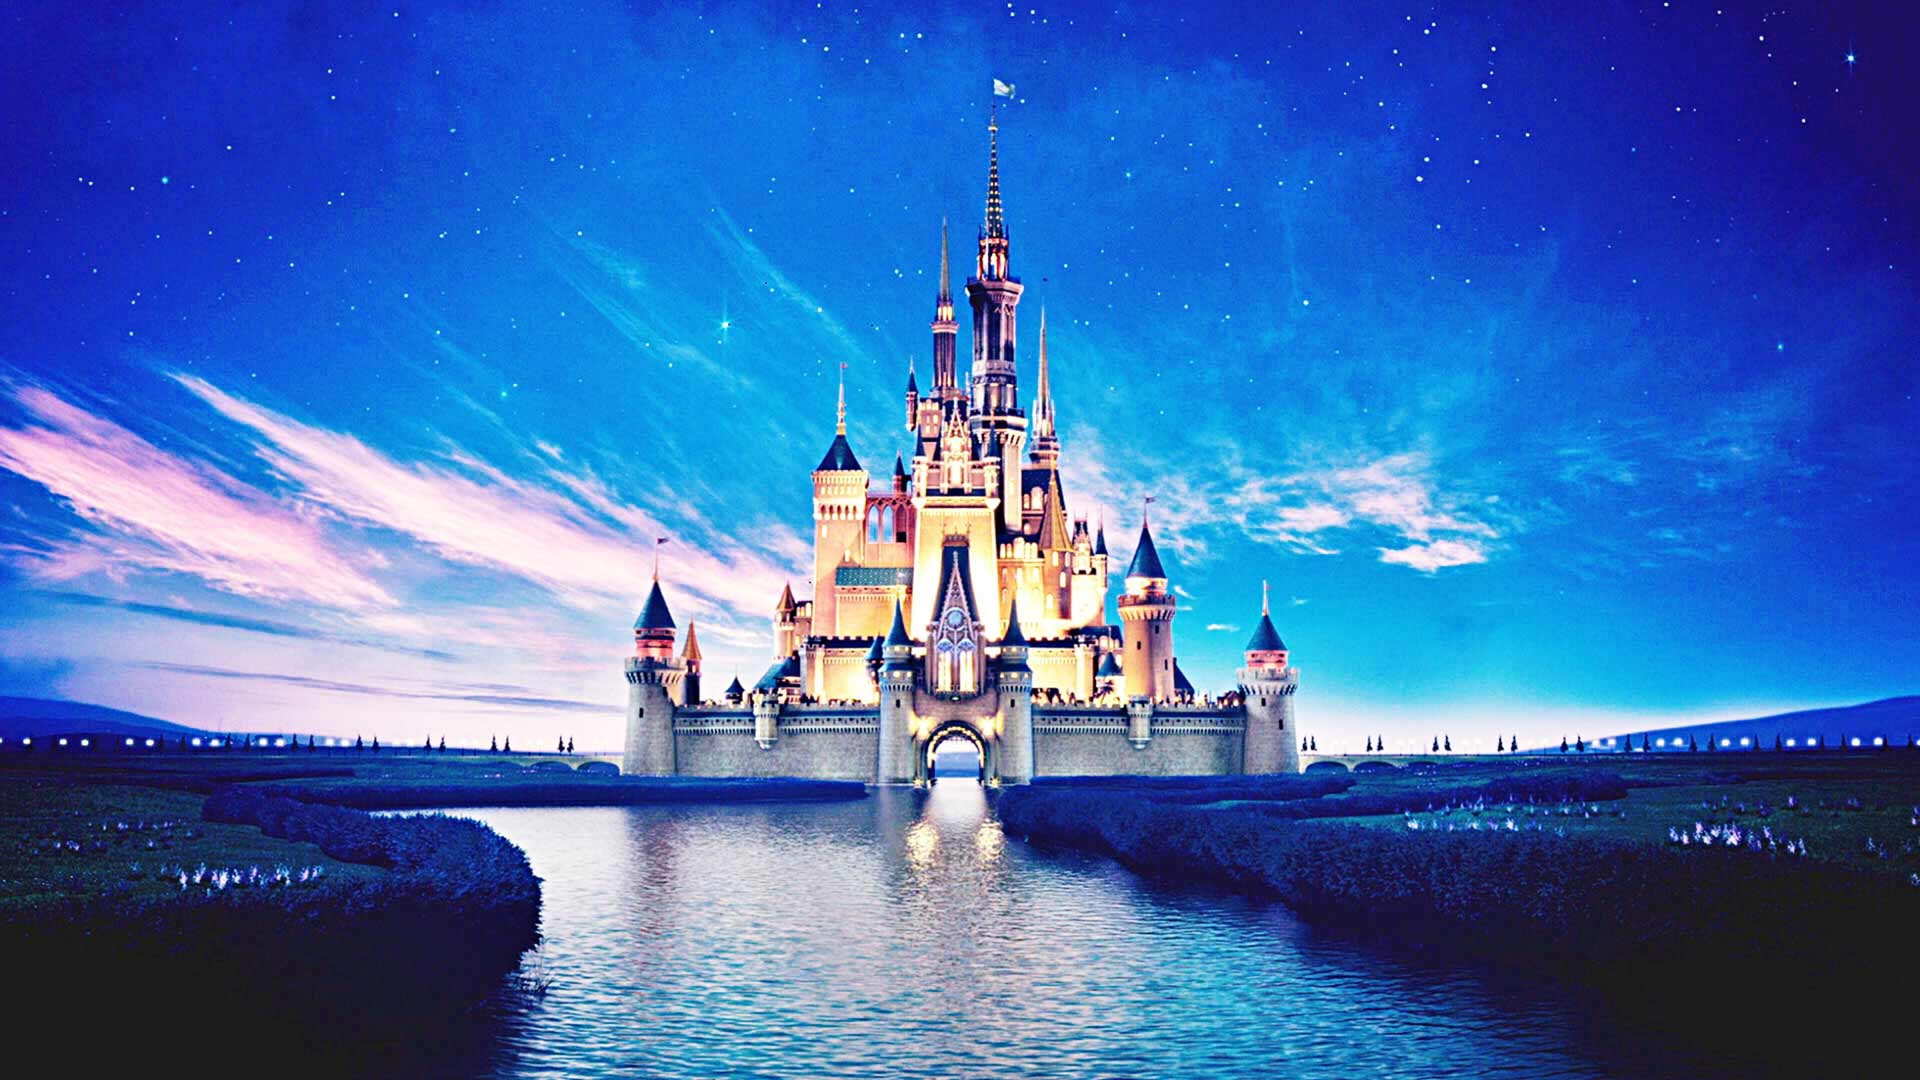 Disney Wallpaper Backgrounds